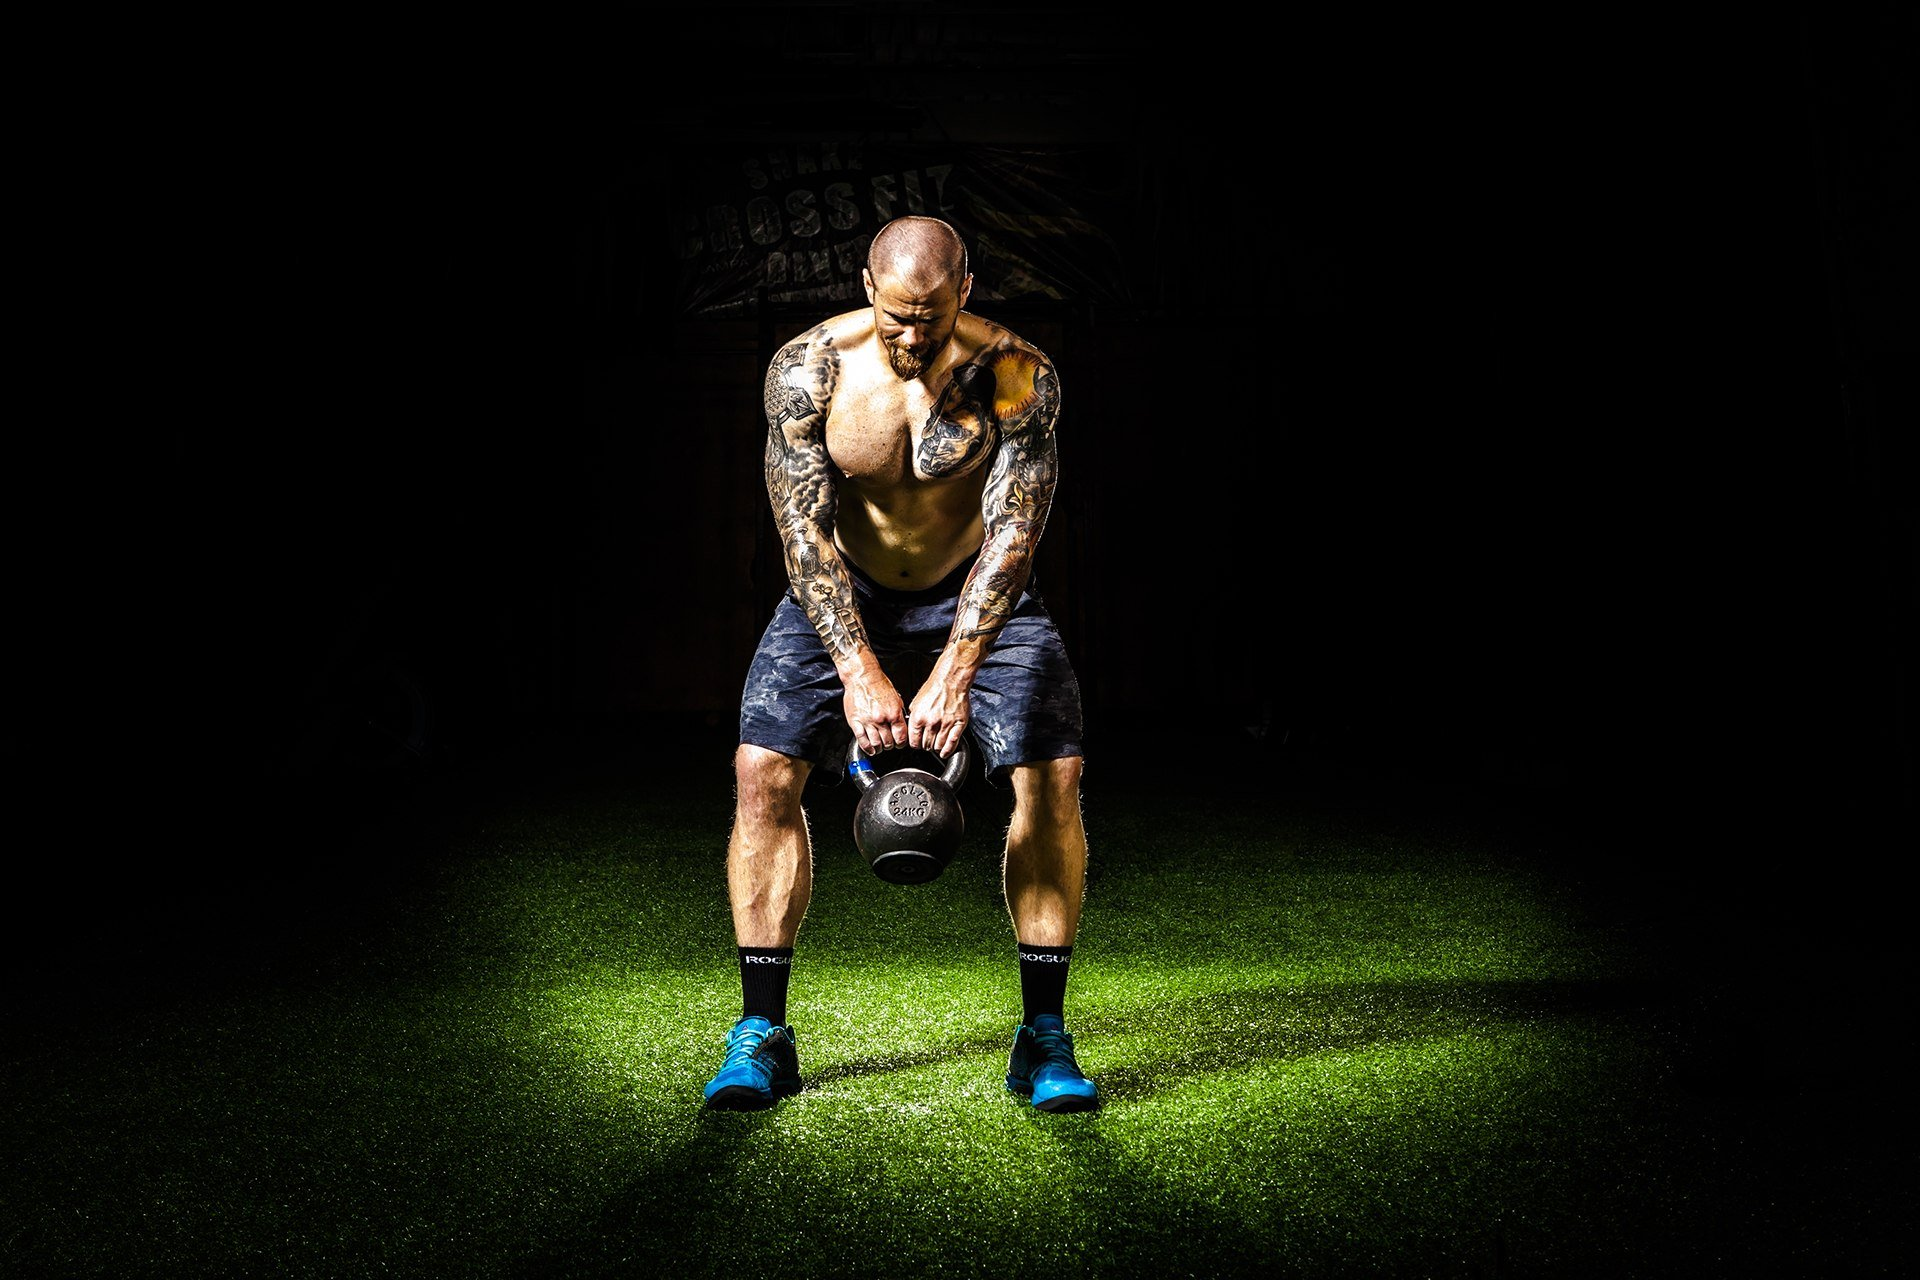 Man doing an exercise with a kettlebell